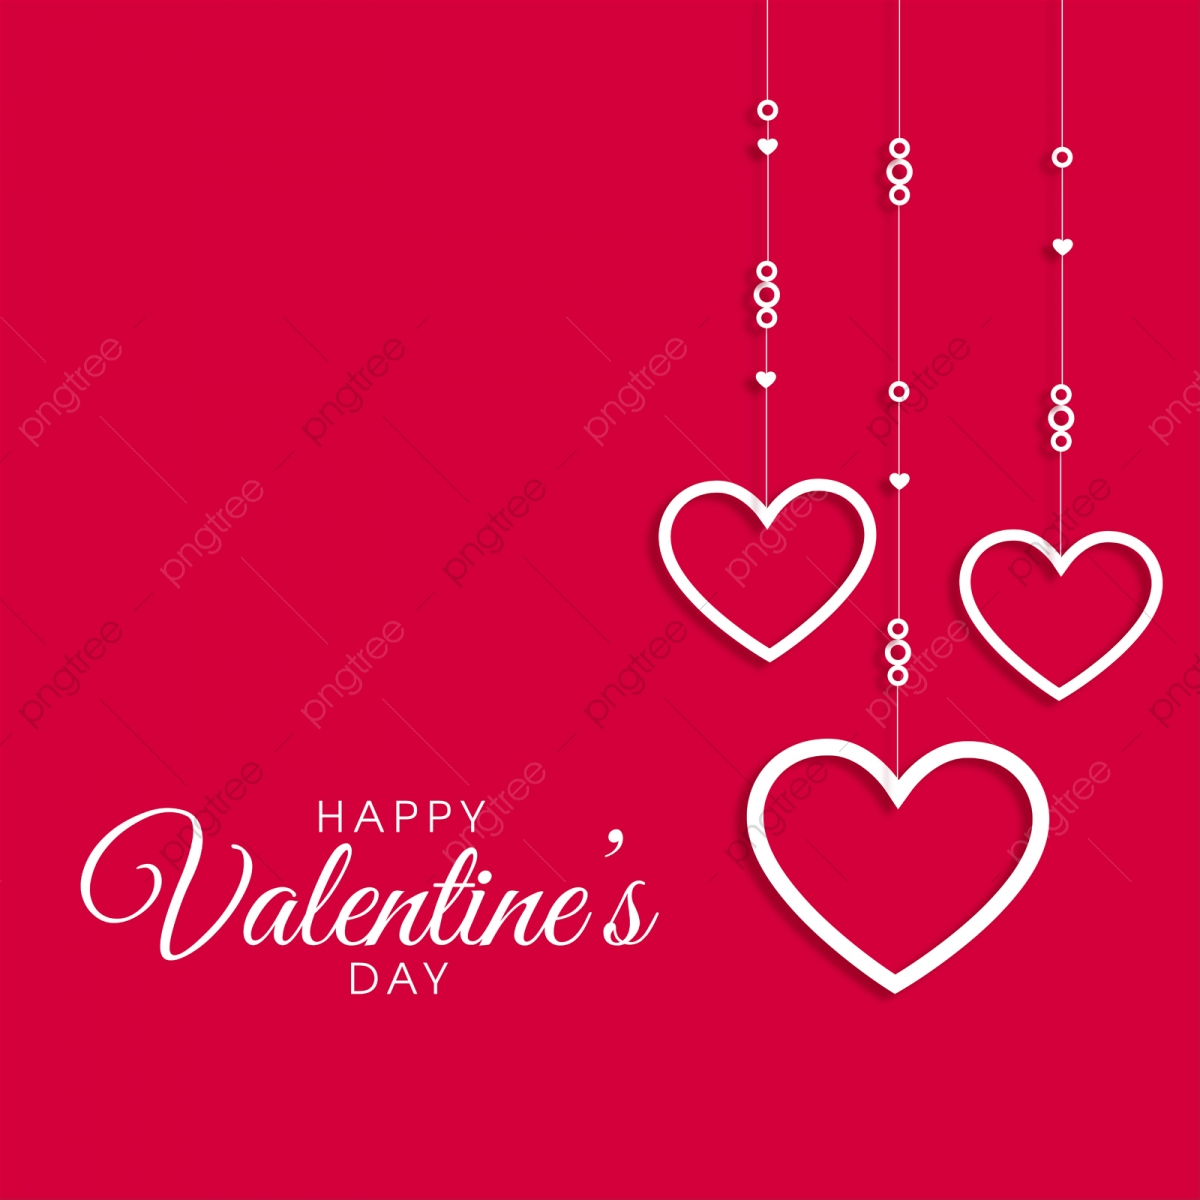 valentine day card on red background pink heart pink